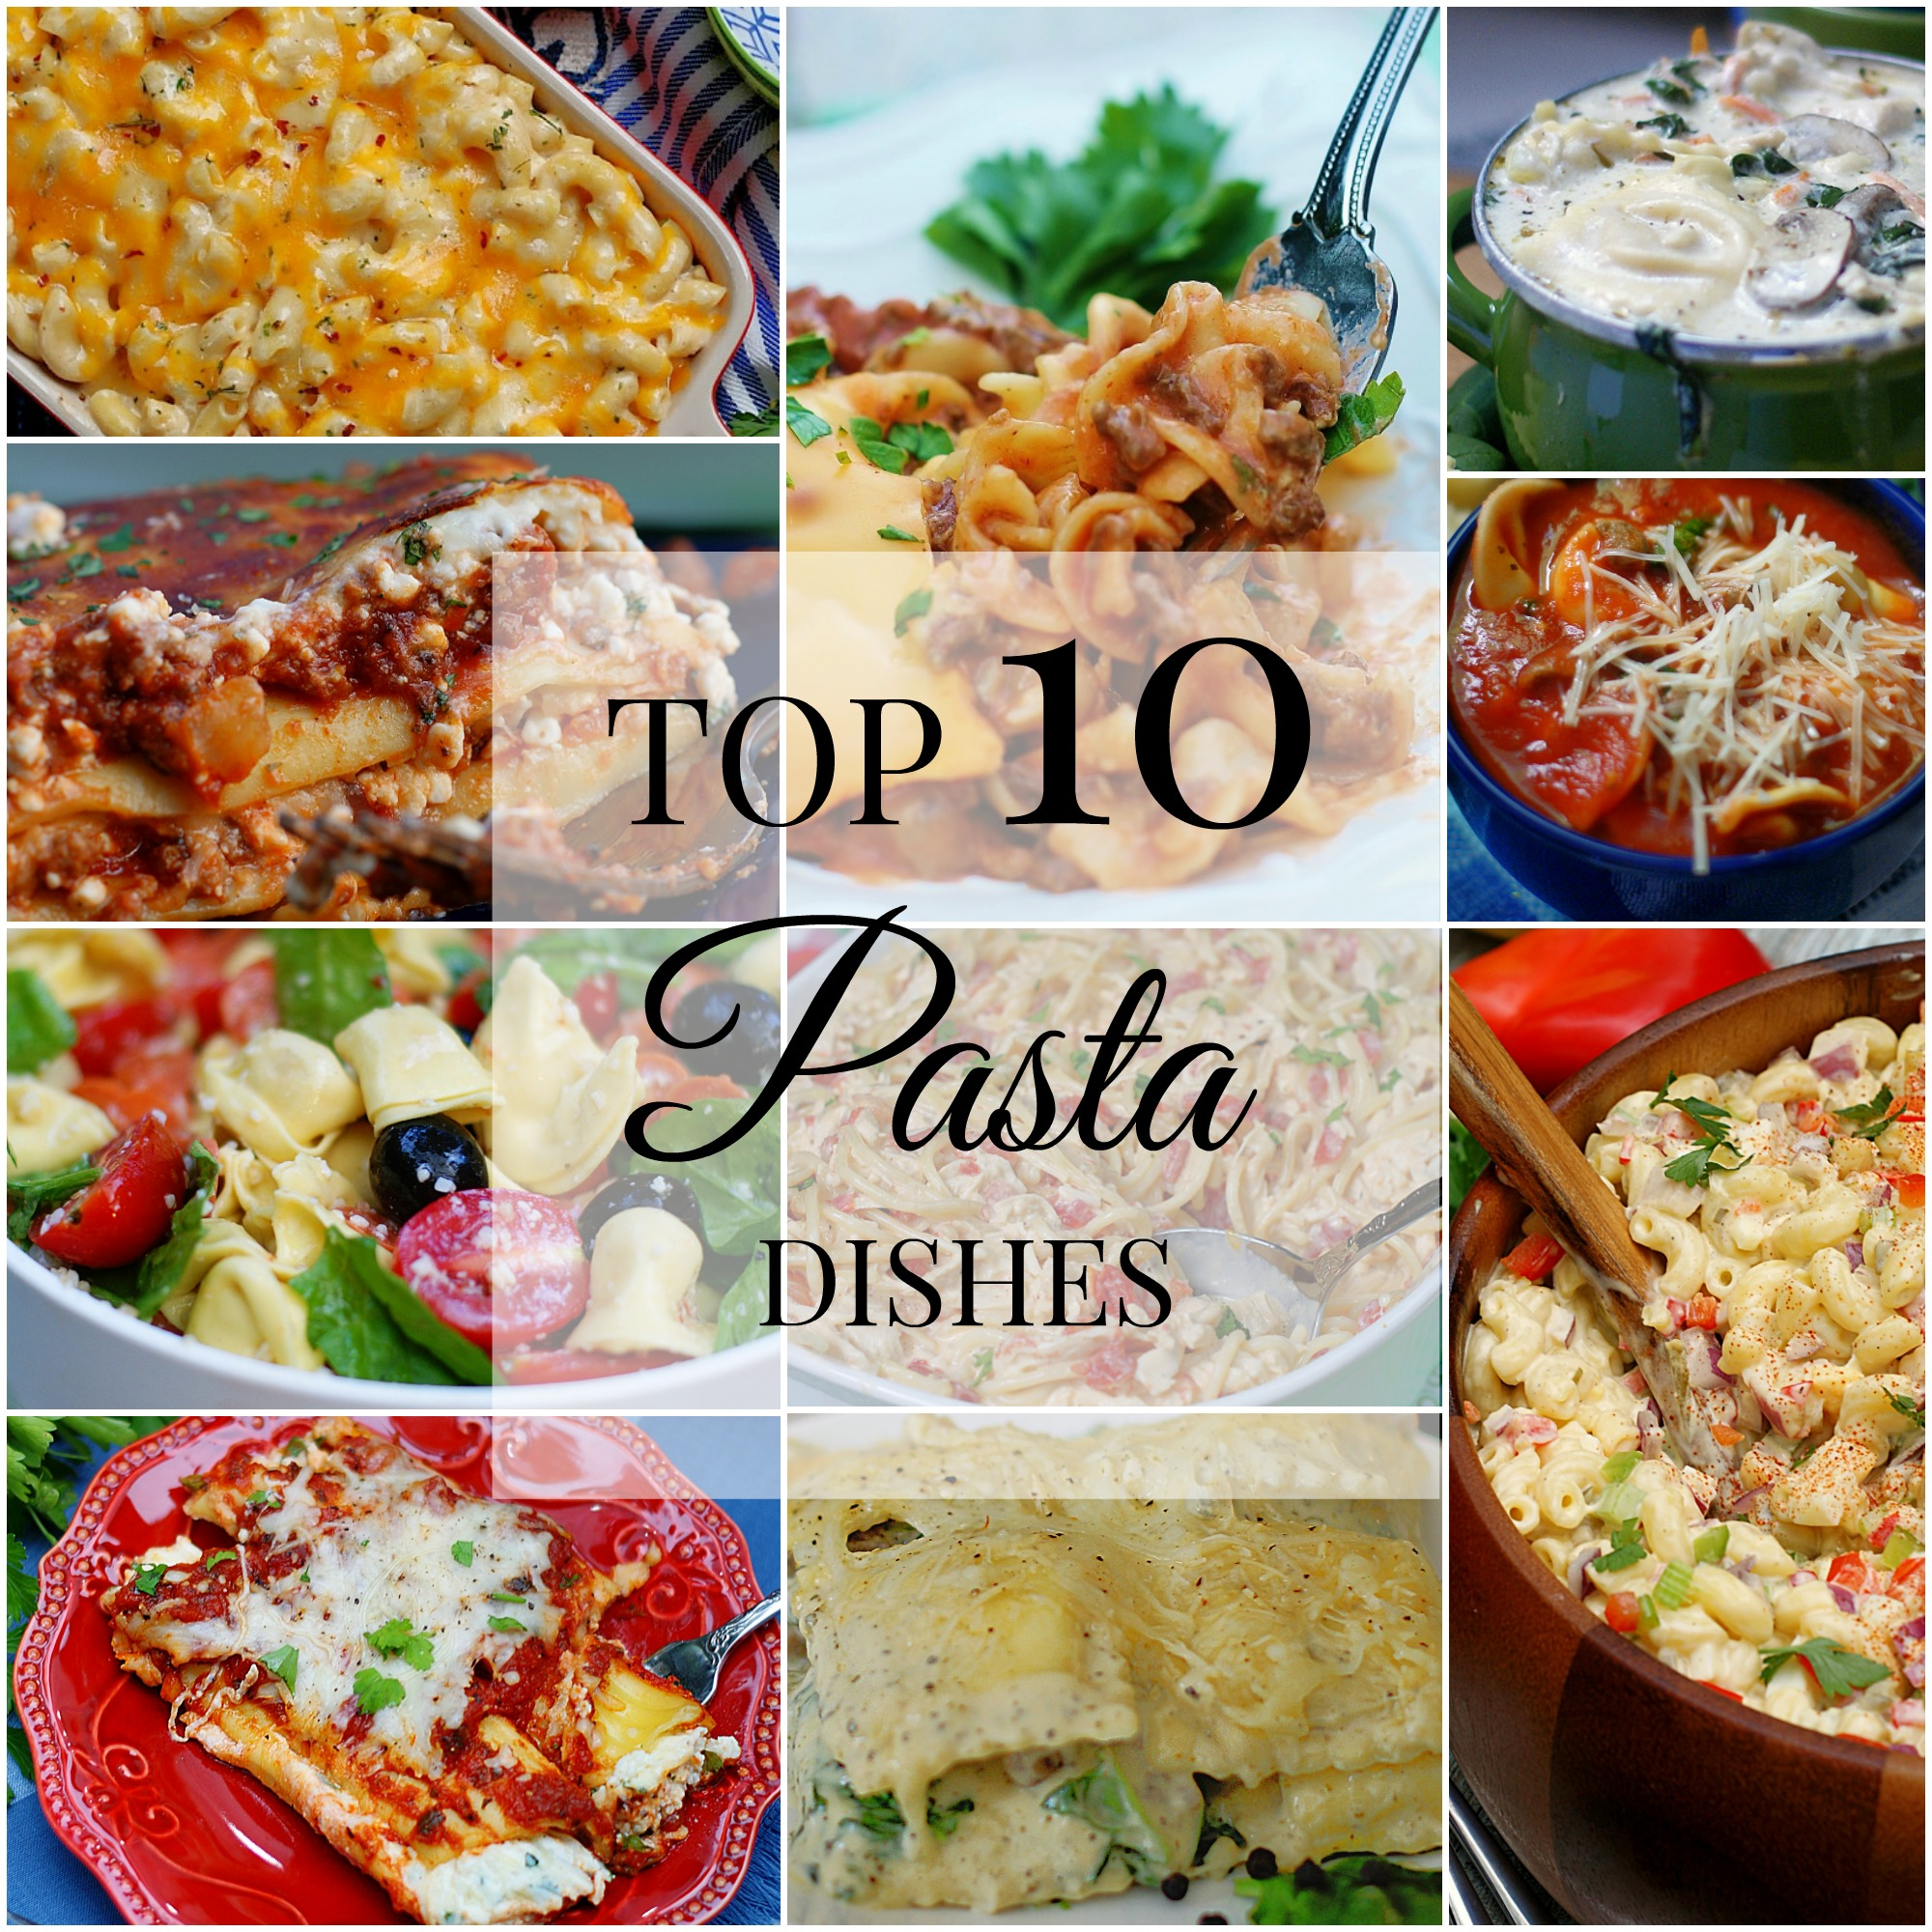 10 pasta dishes title collage